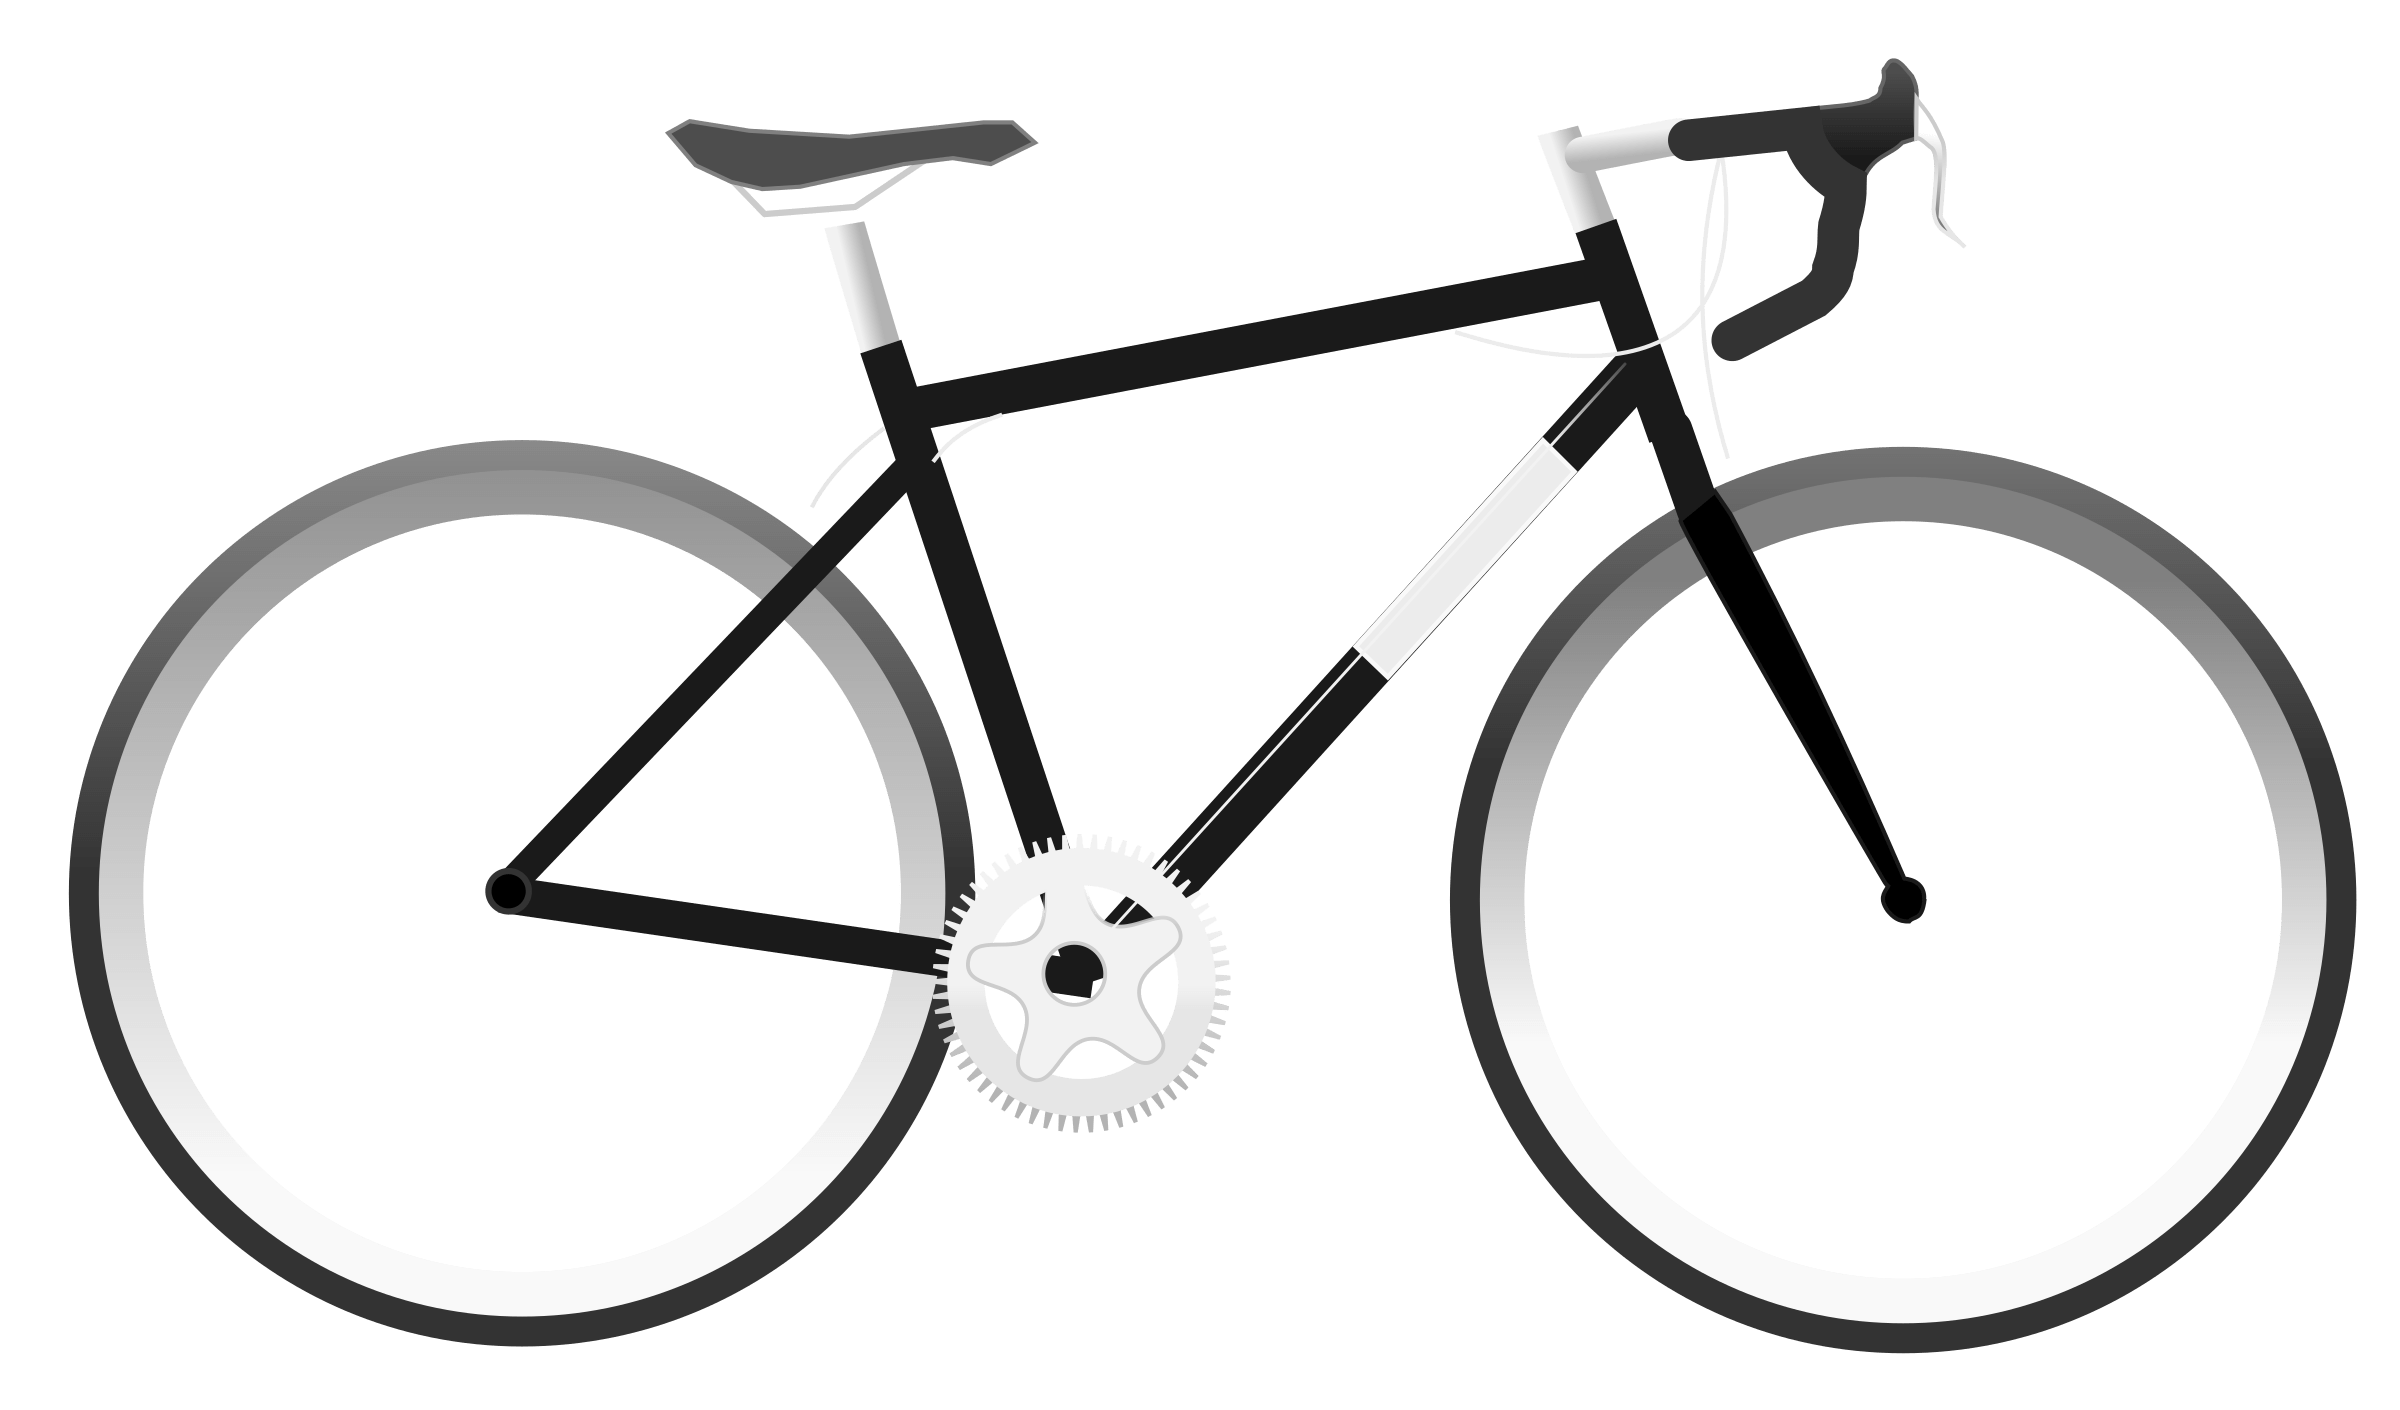 svg royalty free stock Bike clipart. Simple transparent png stickpng.